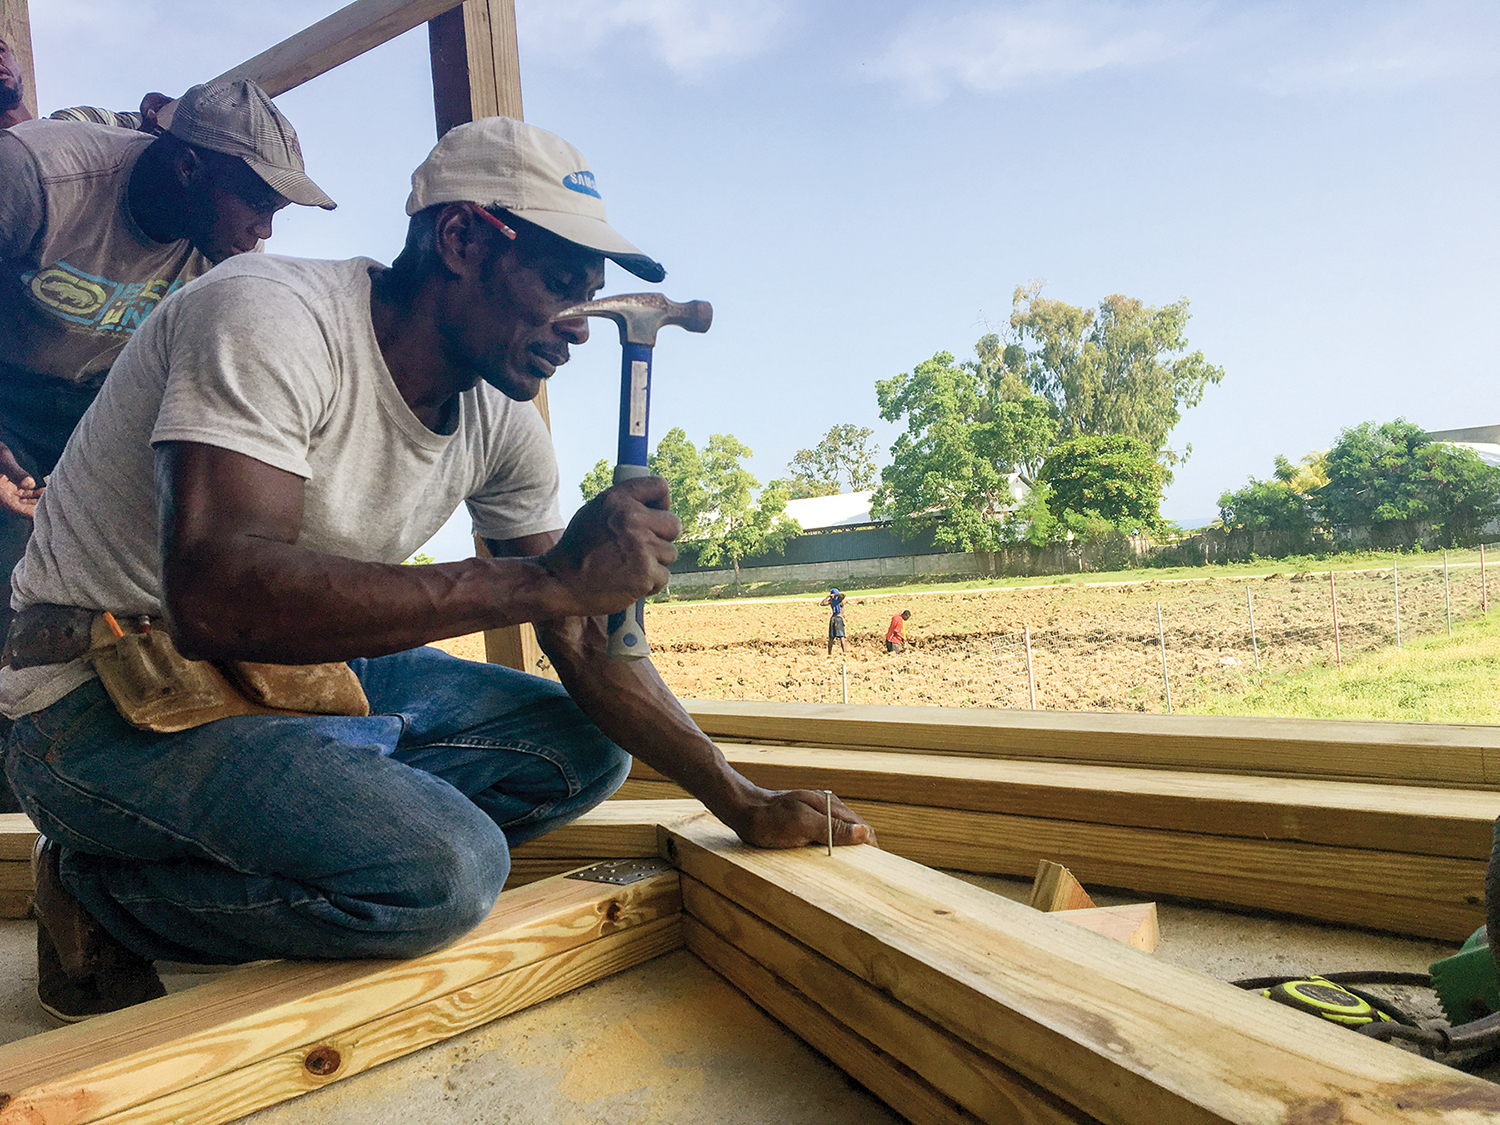 Carpenter Sonny works at New Missions making roofing trusses for our churches.